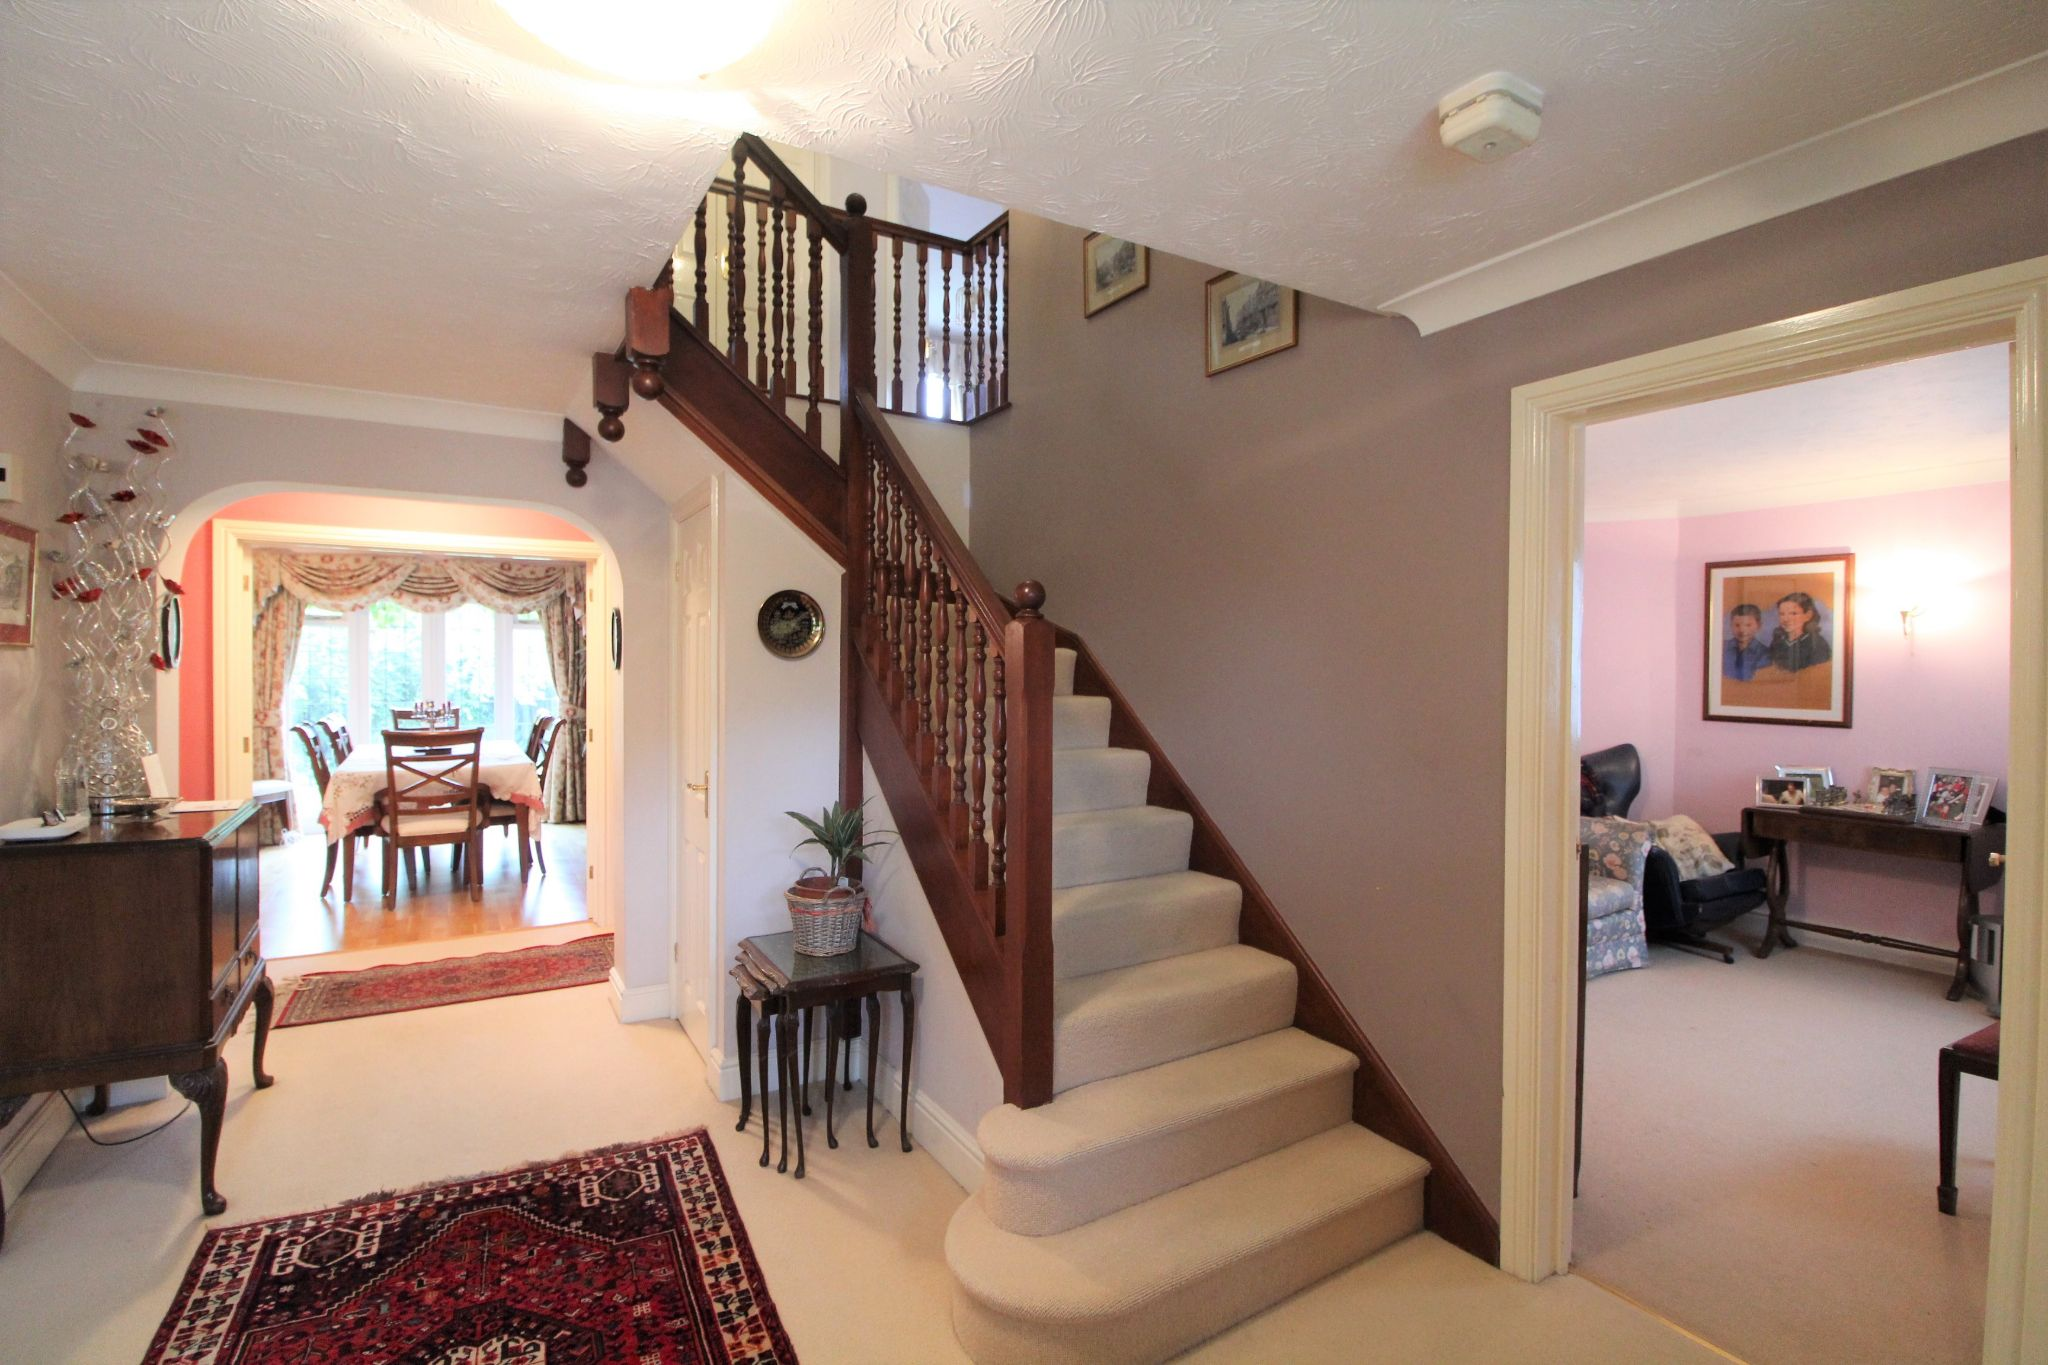 5 bedroom detached house For Sale in West Cheshunt - Photograph 2